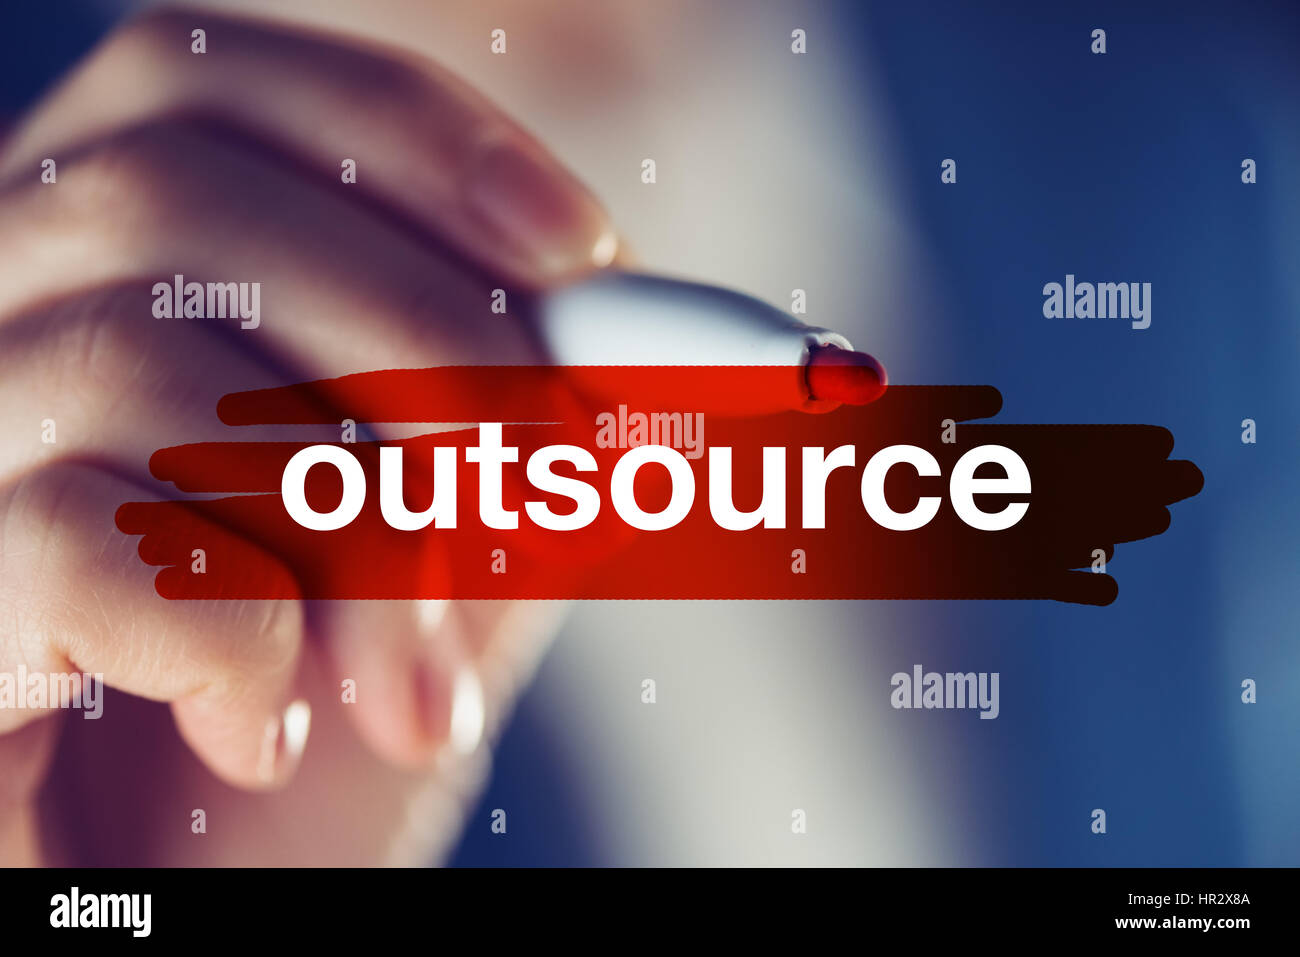 Outsource business concept with businesswoman highlighting word - Stock Image